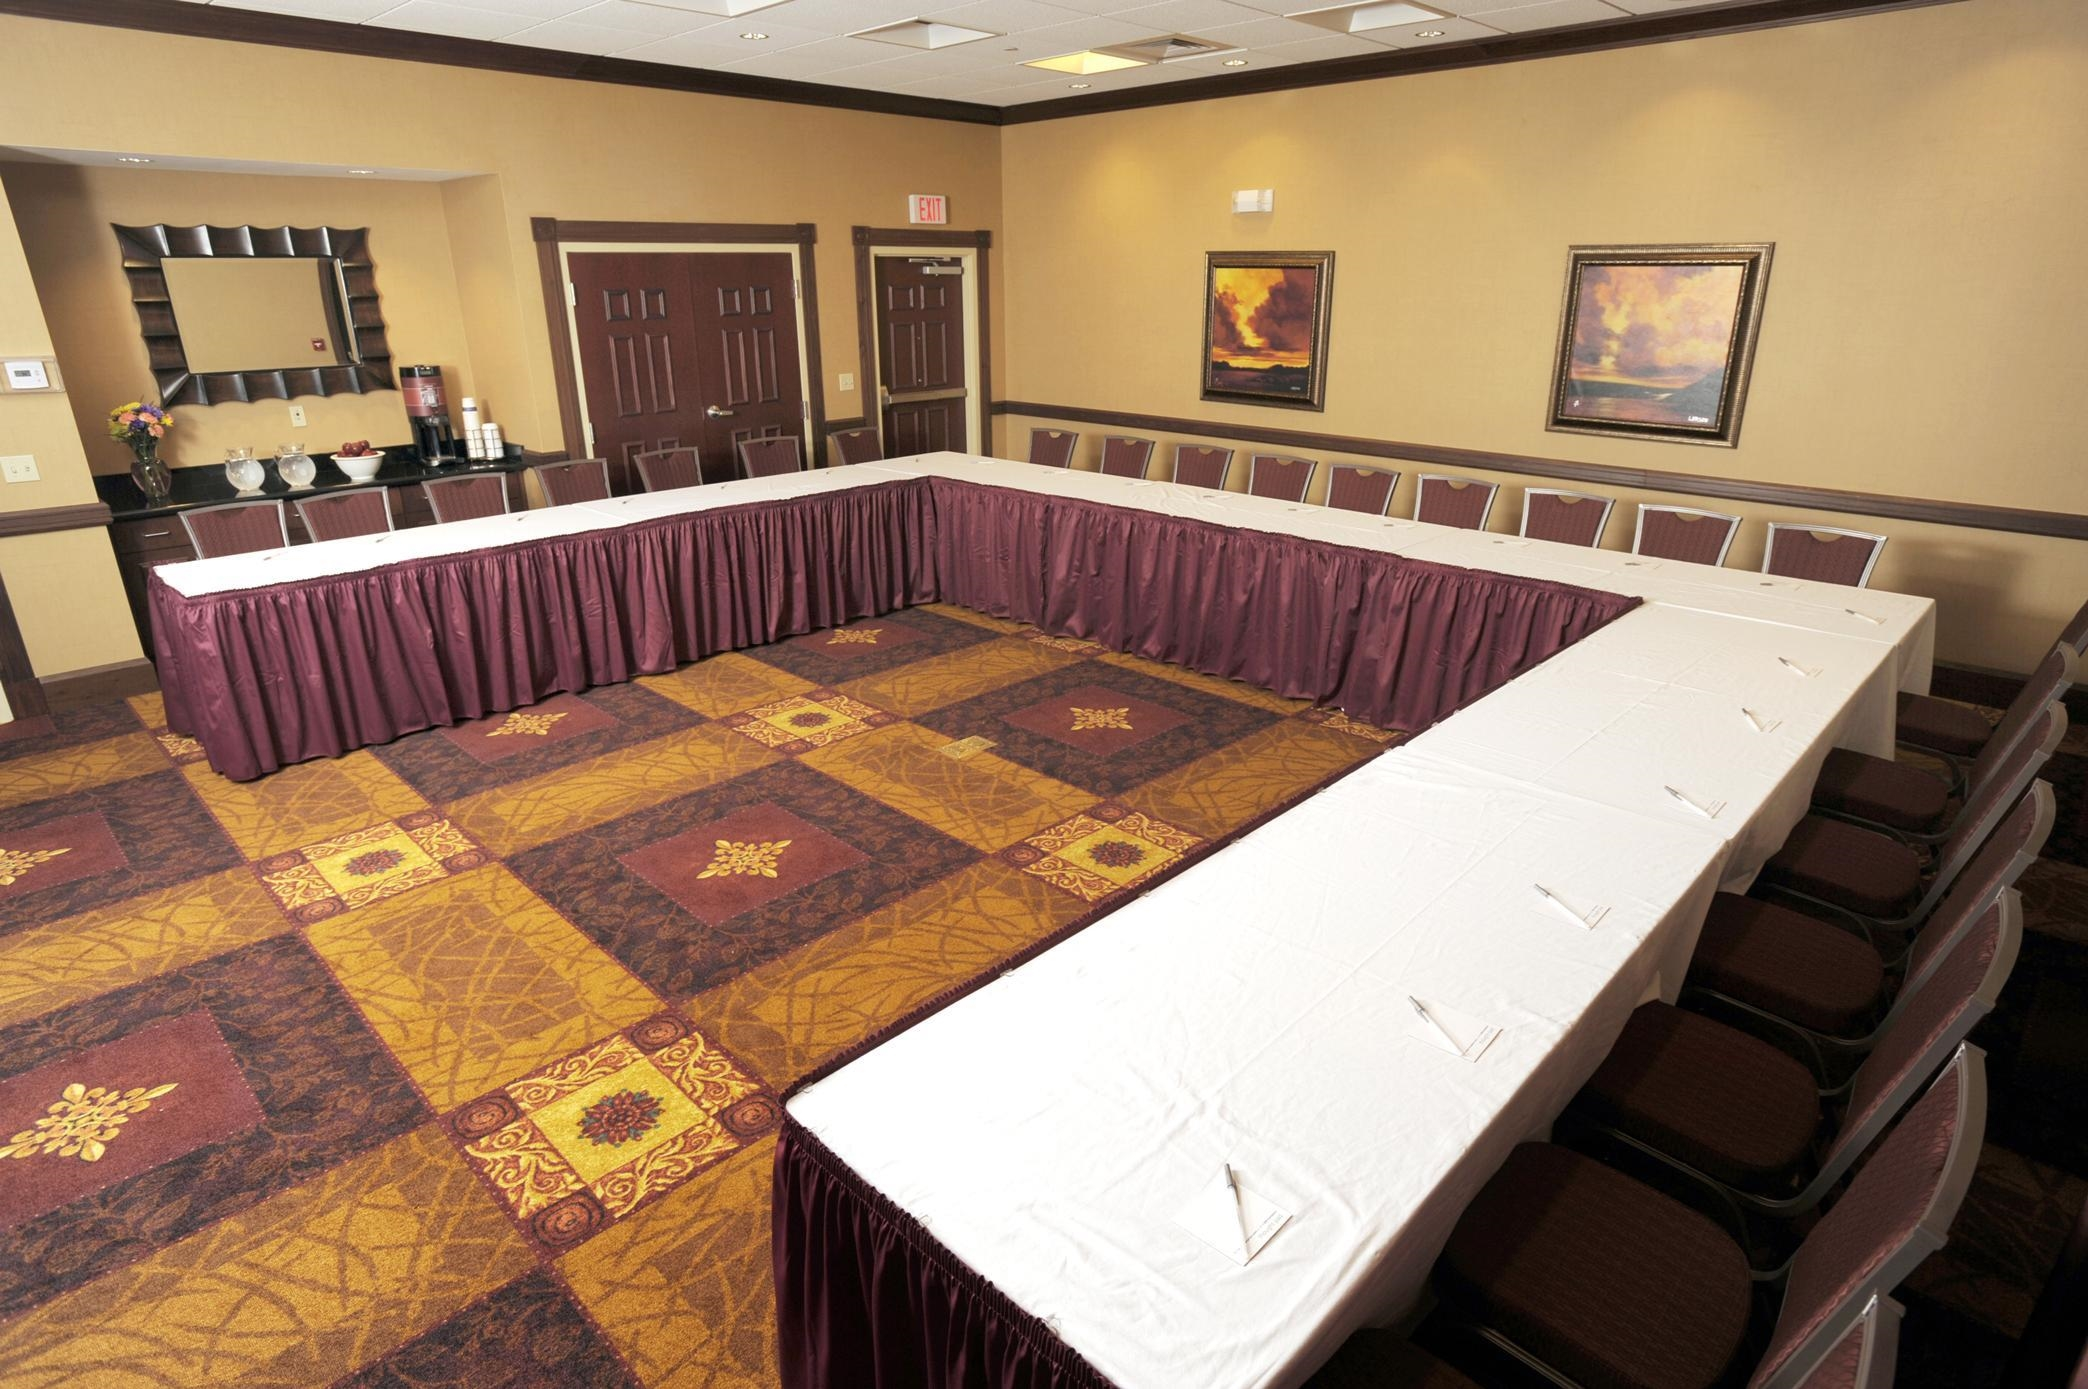 Hampton Inn & Suites Chadds Ford image 8